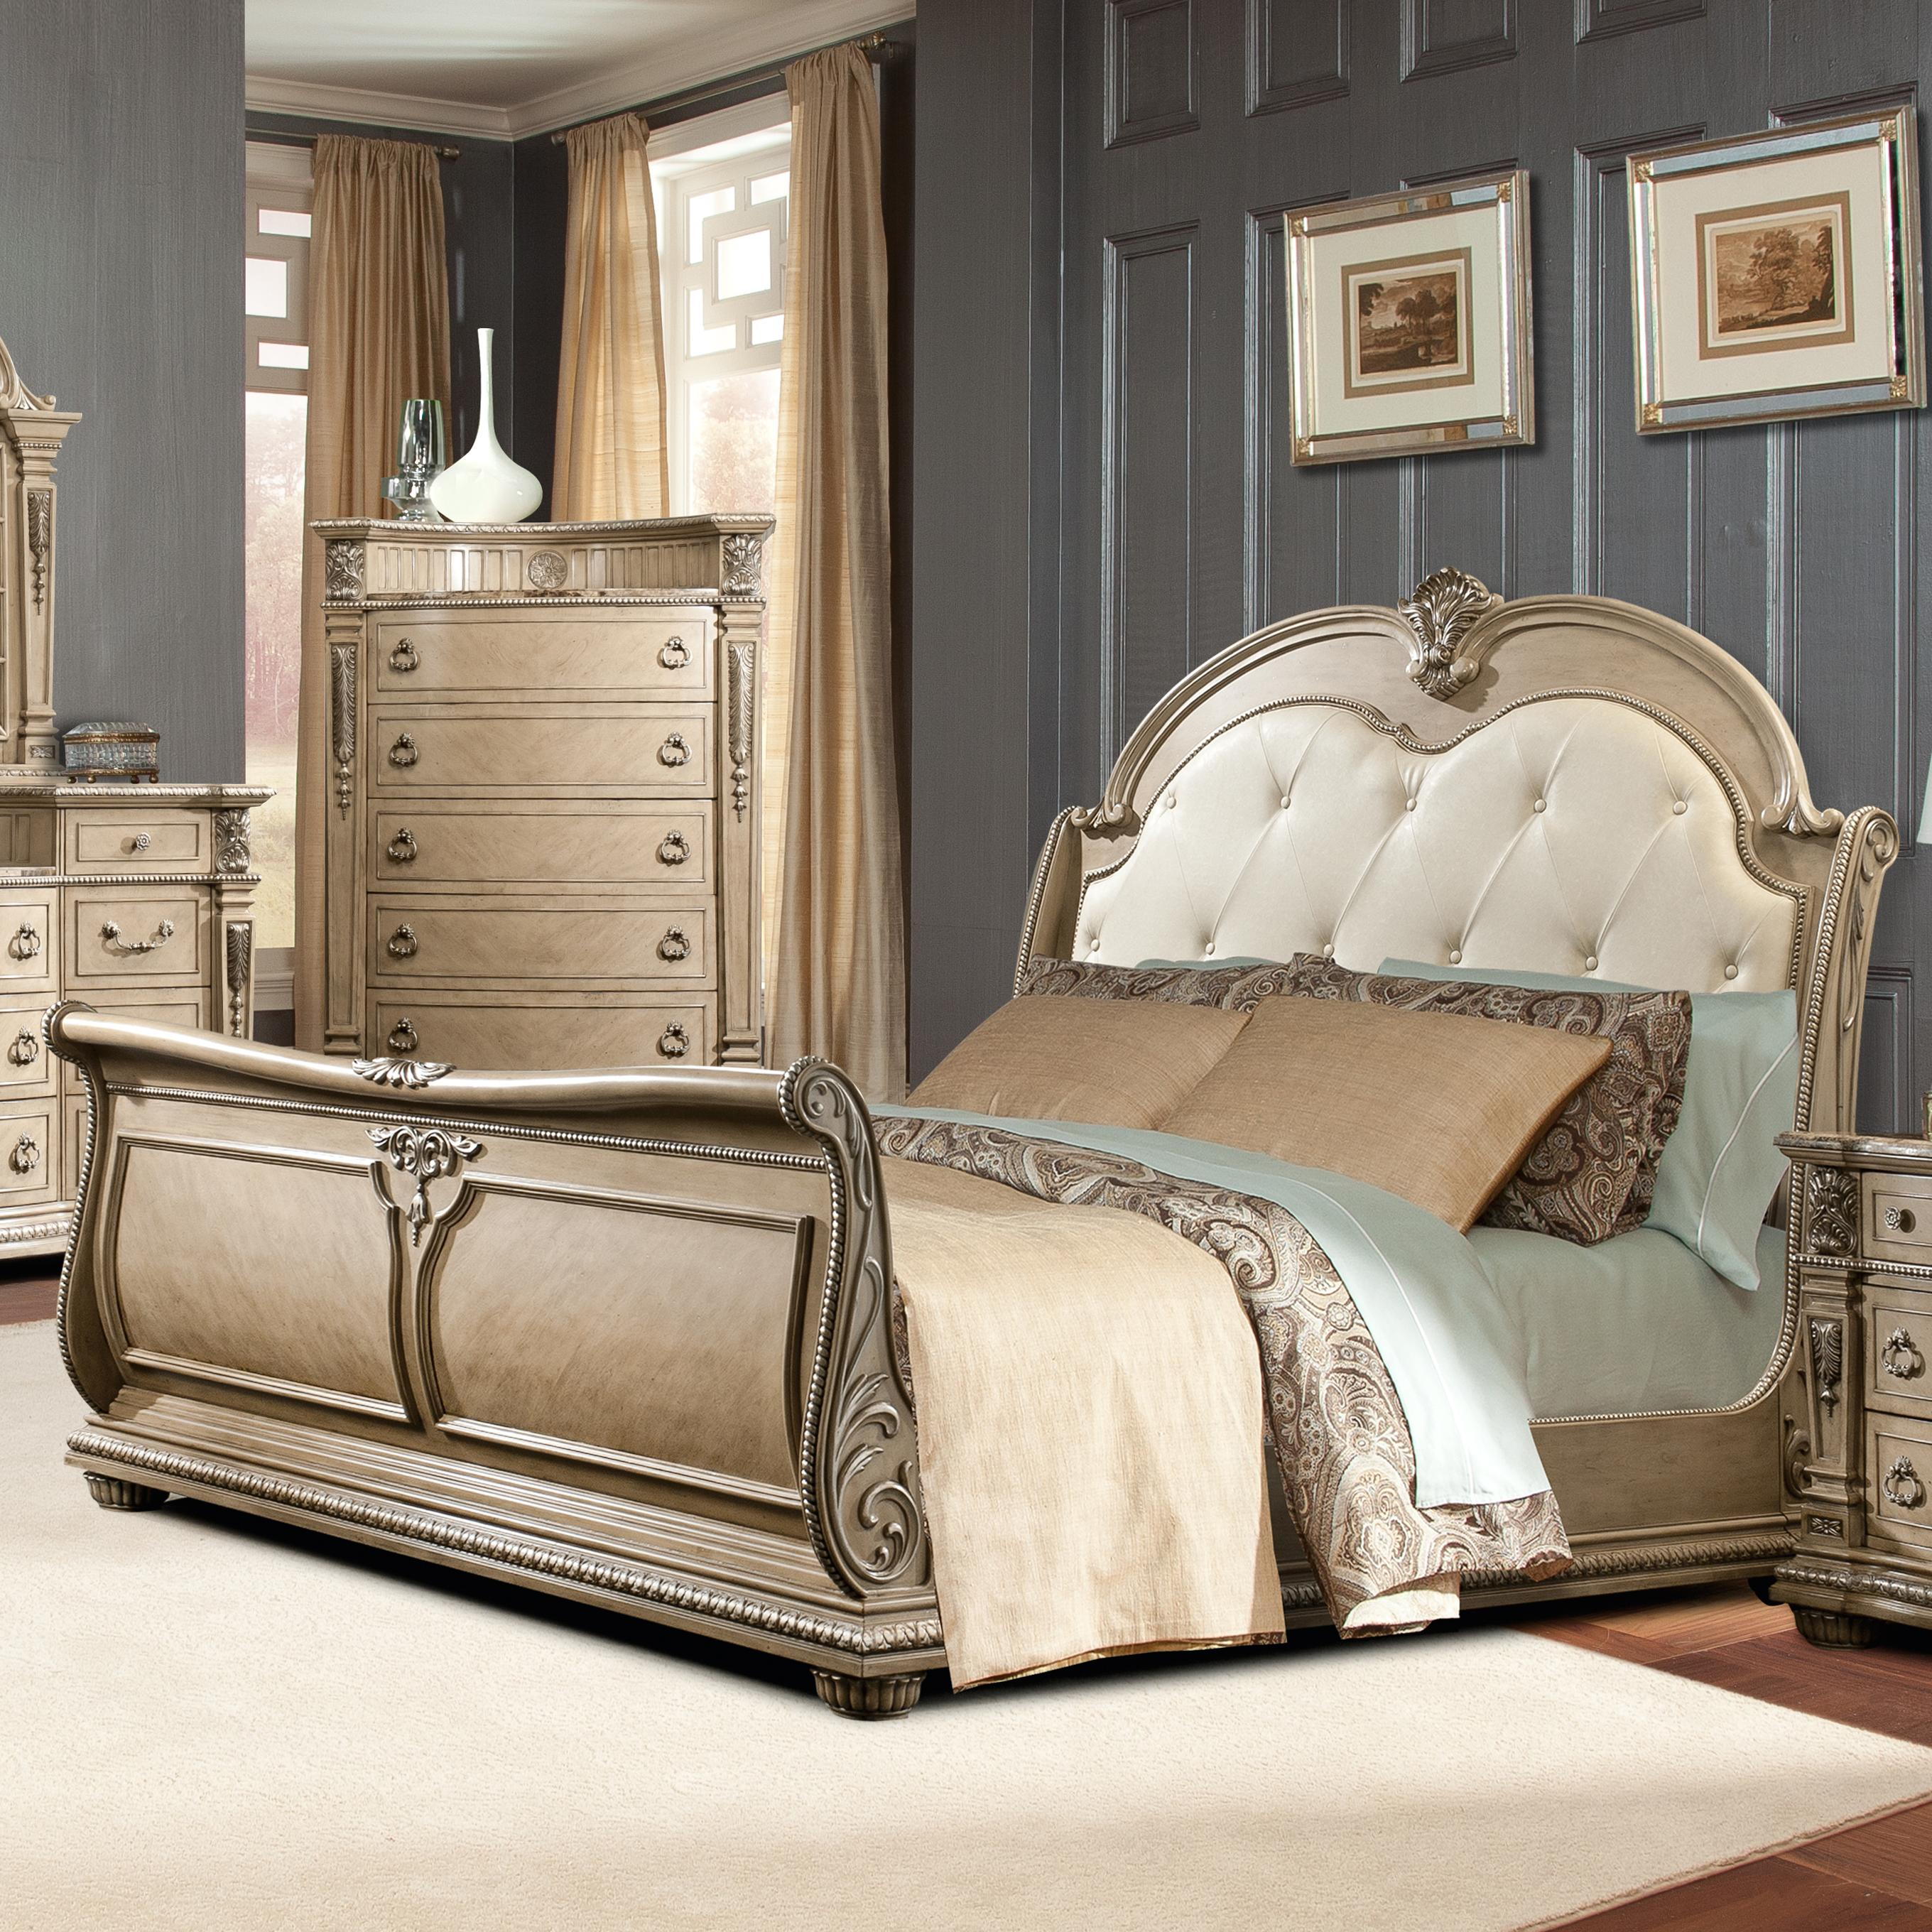 Davis Direct Monaco Queen Sleigh Bed with Diamond Tufted Headboard